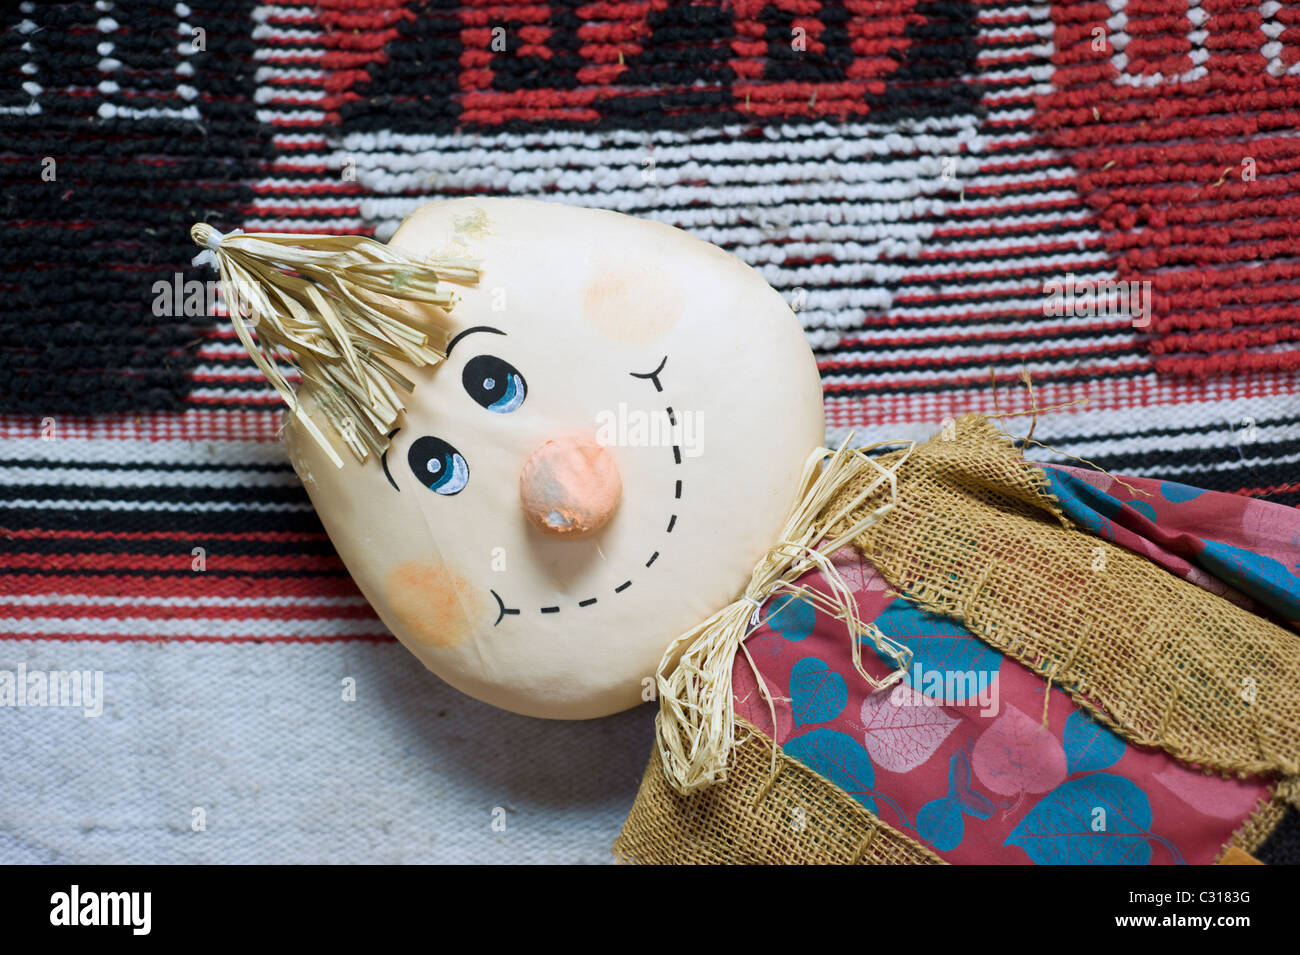 A toy doll smiling in front of an Indian blanket, New Mexico. - Stock Image